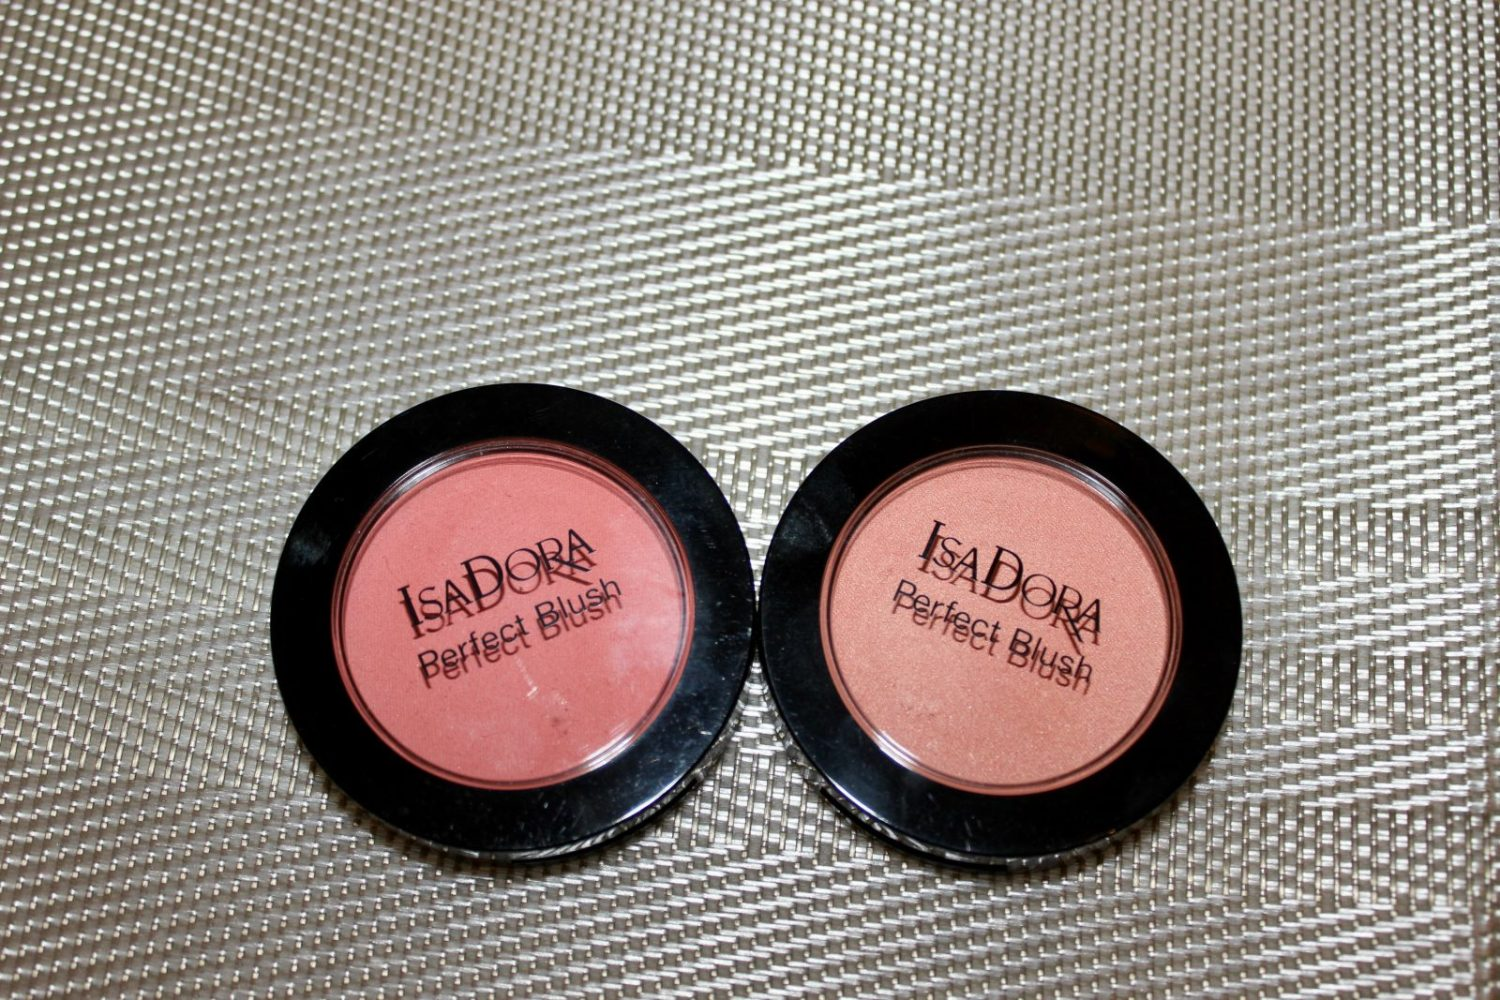 isa dora perfect blush